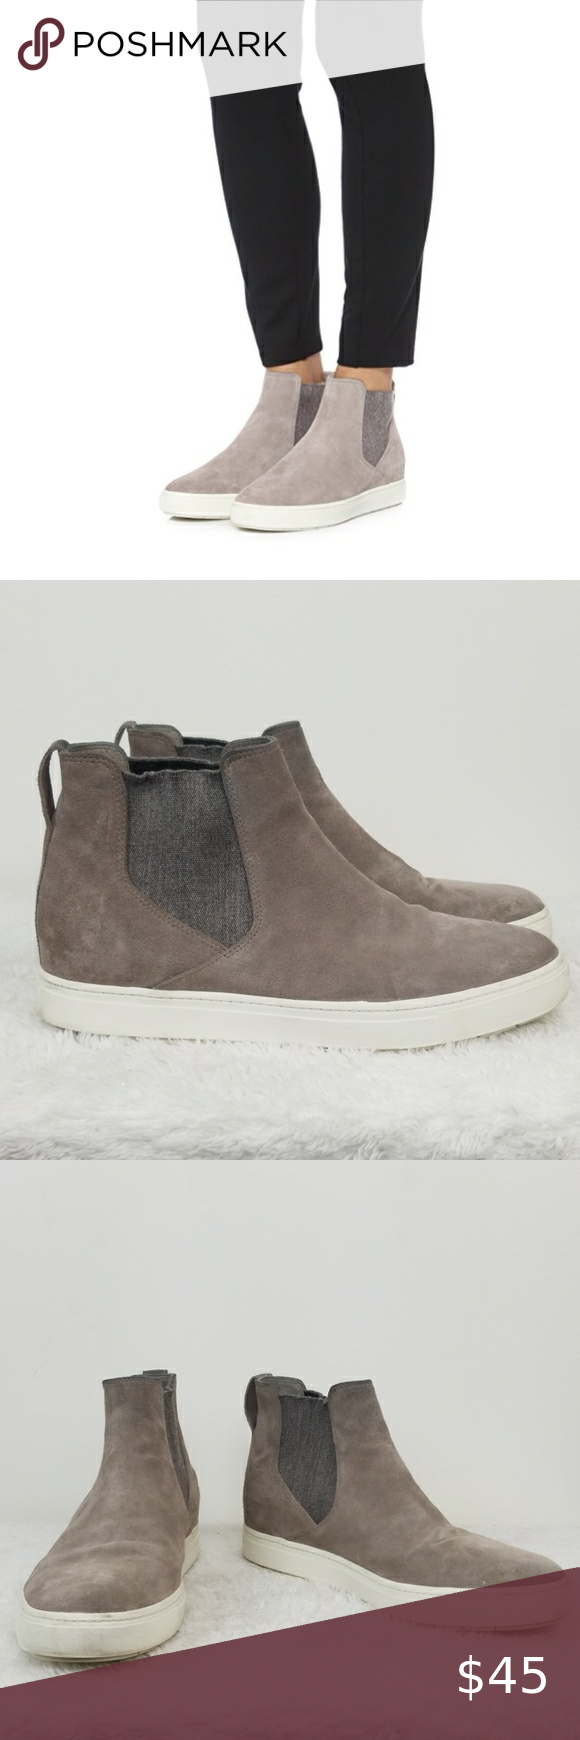 VINCE Newlyn High Top Sneaker Boots in